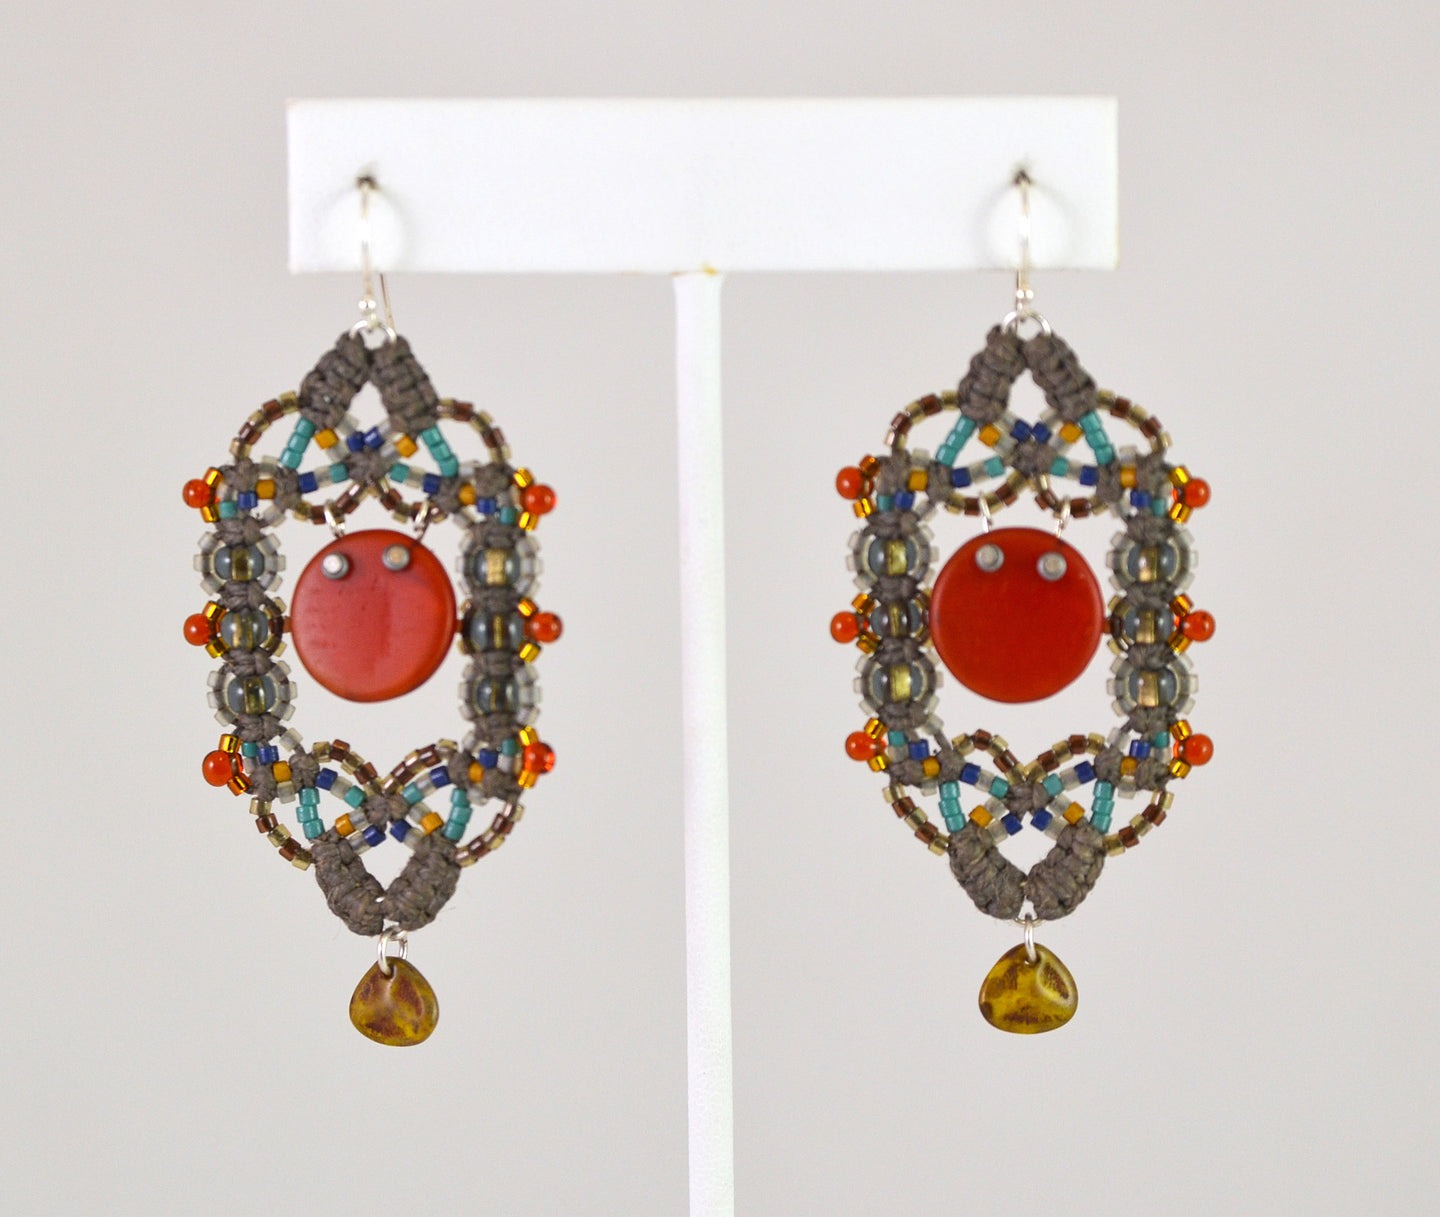 Beaded Earrings (rkhe21) by Renate Kasper